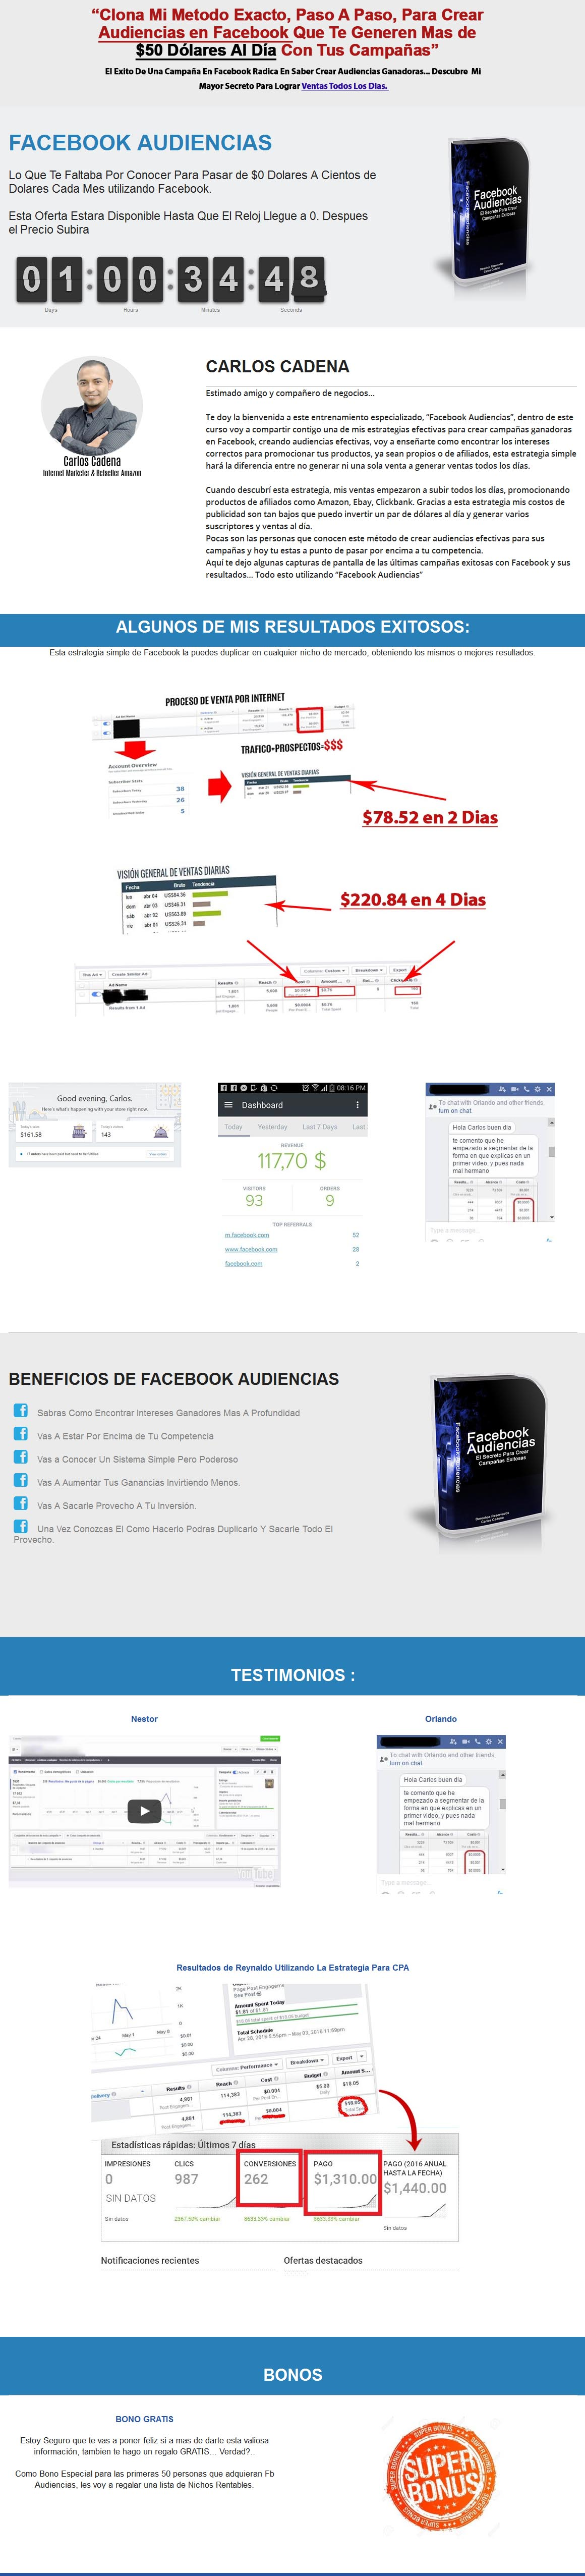 FB AUDIENCIAS